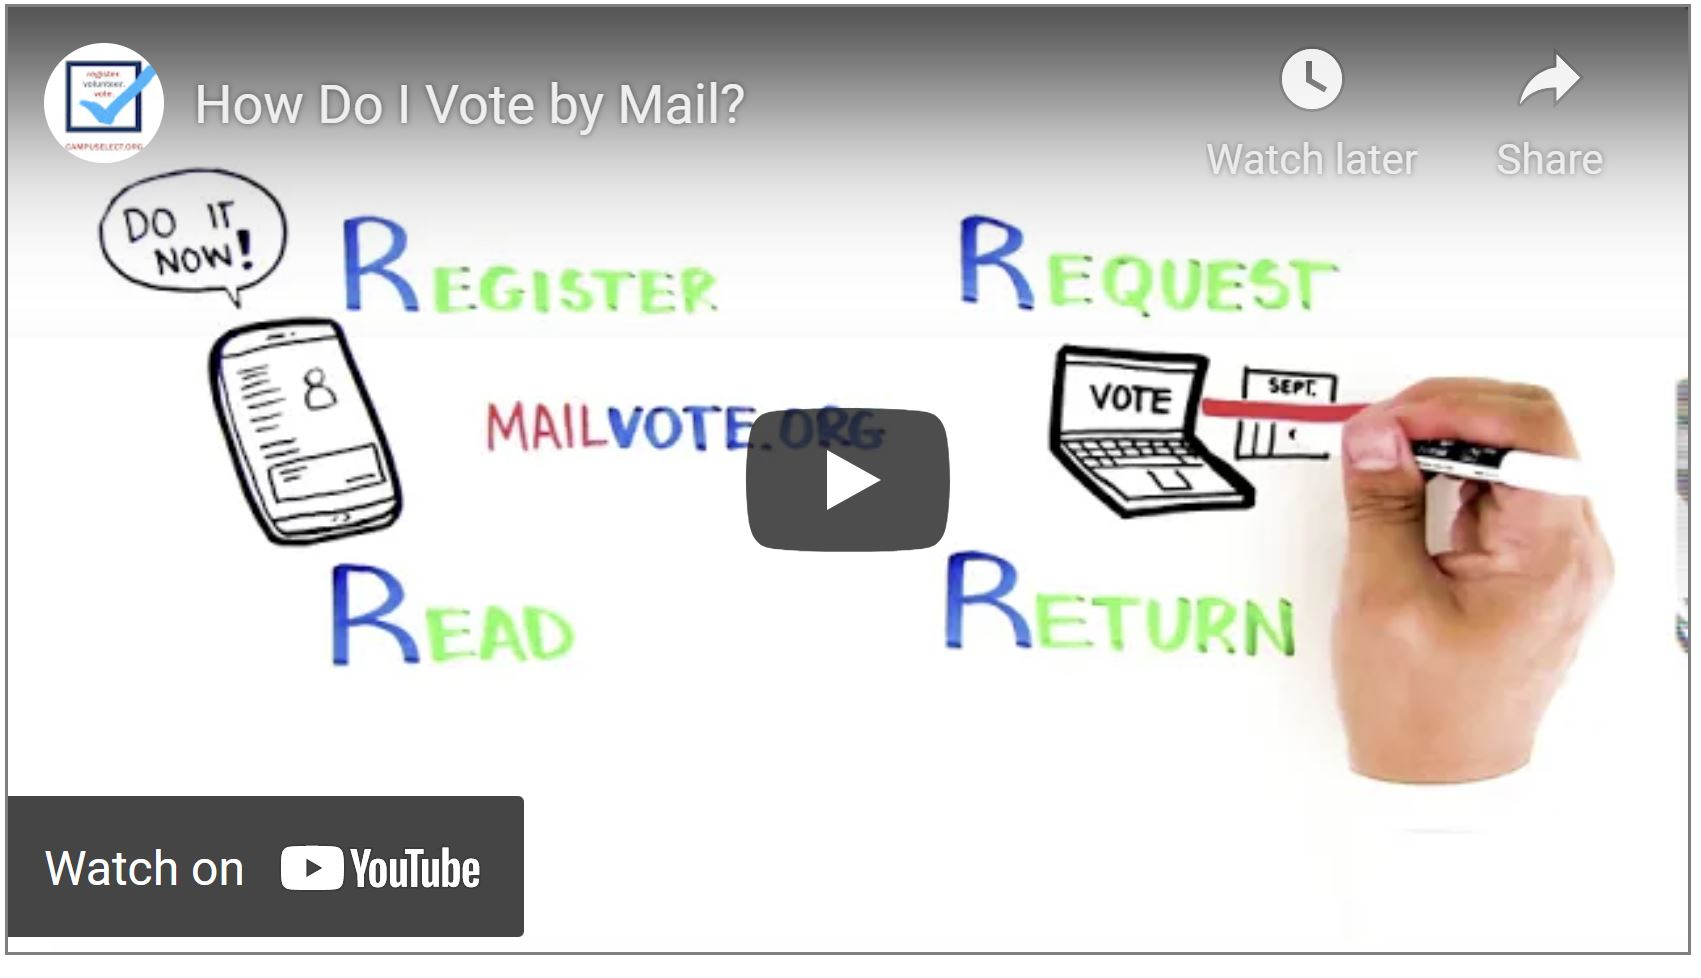 Learn how to Vote by Mail